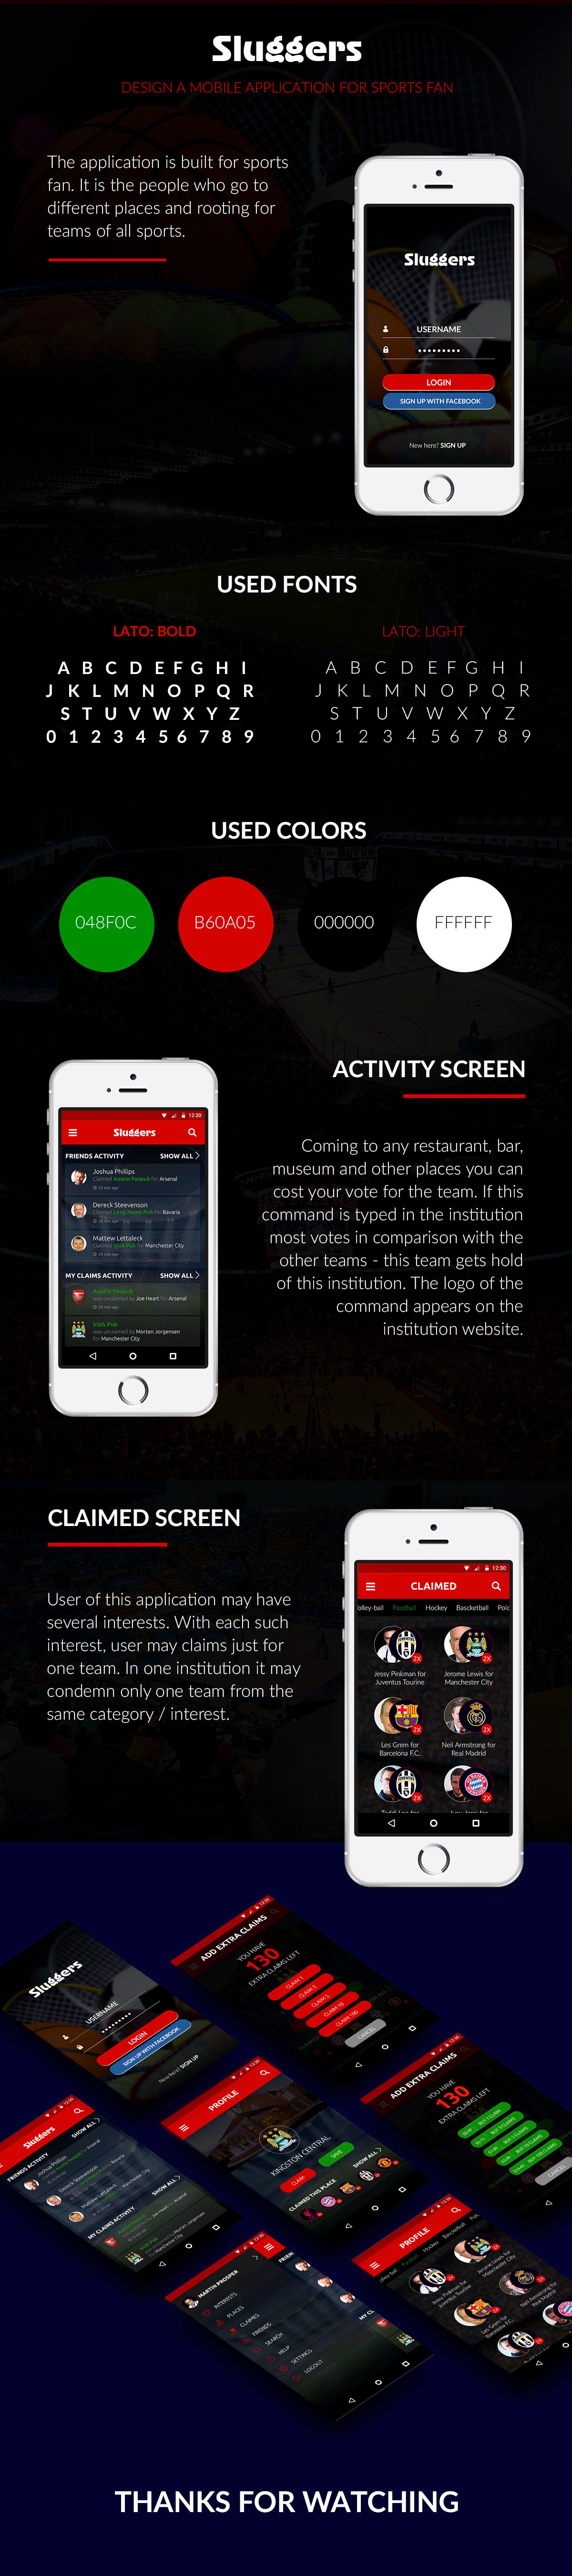 Mobile Application For Sports Fan